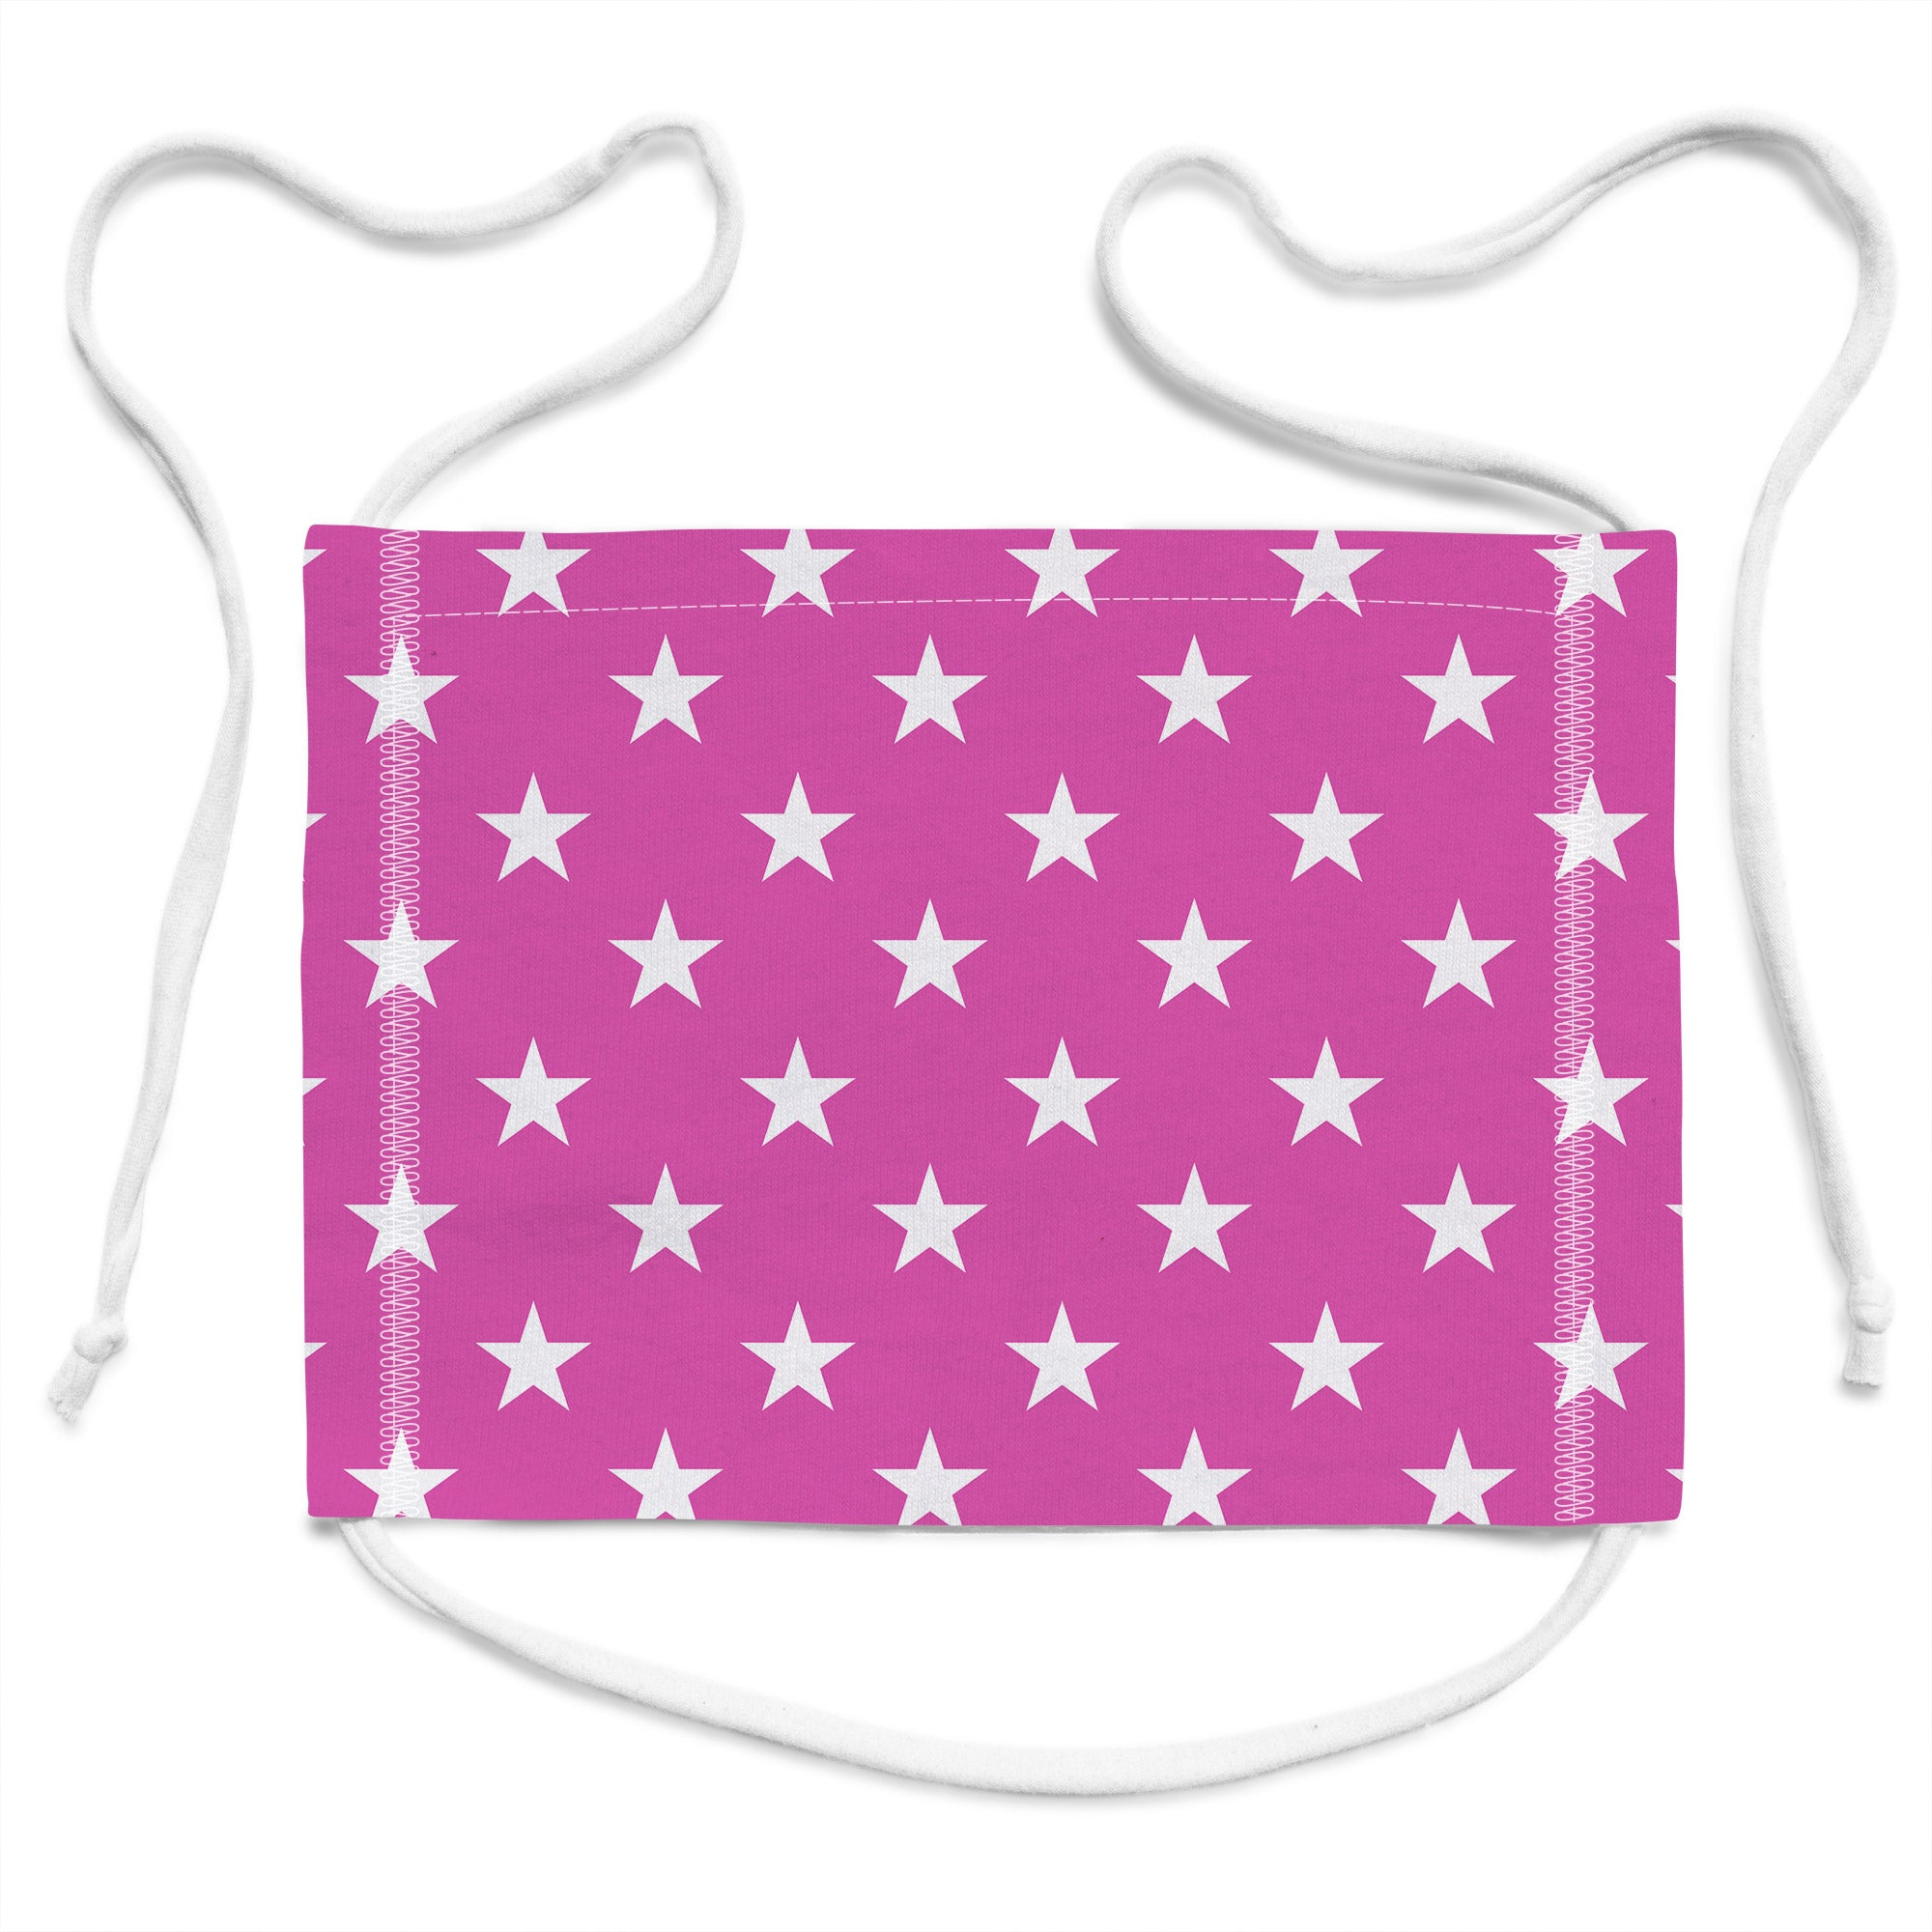 CHEAP Pink Stars Face Mask 26660545839 – Clothing Accessories